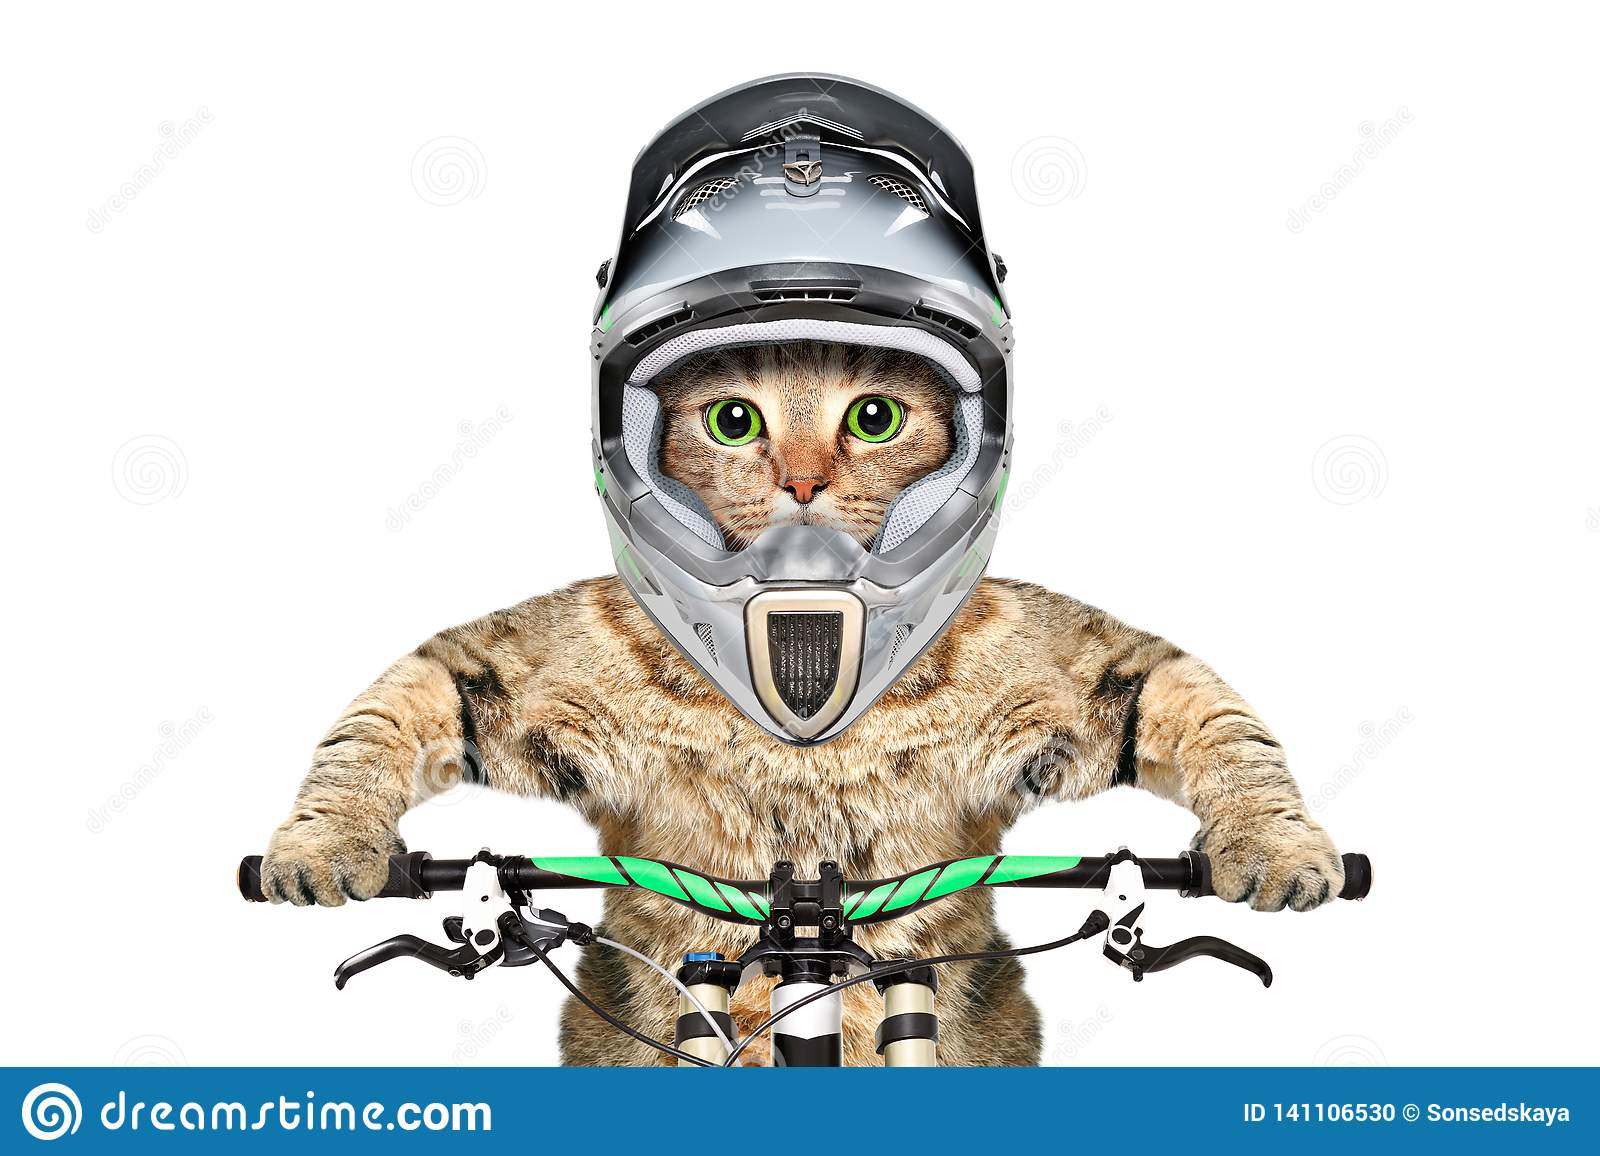 Cat in a helmet on a bicycle